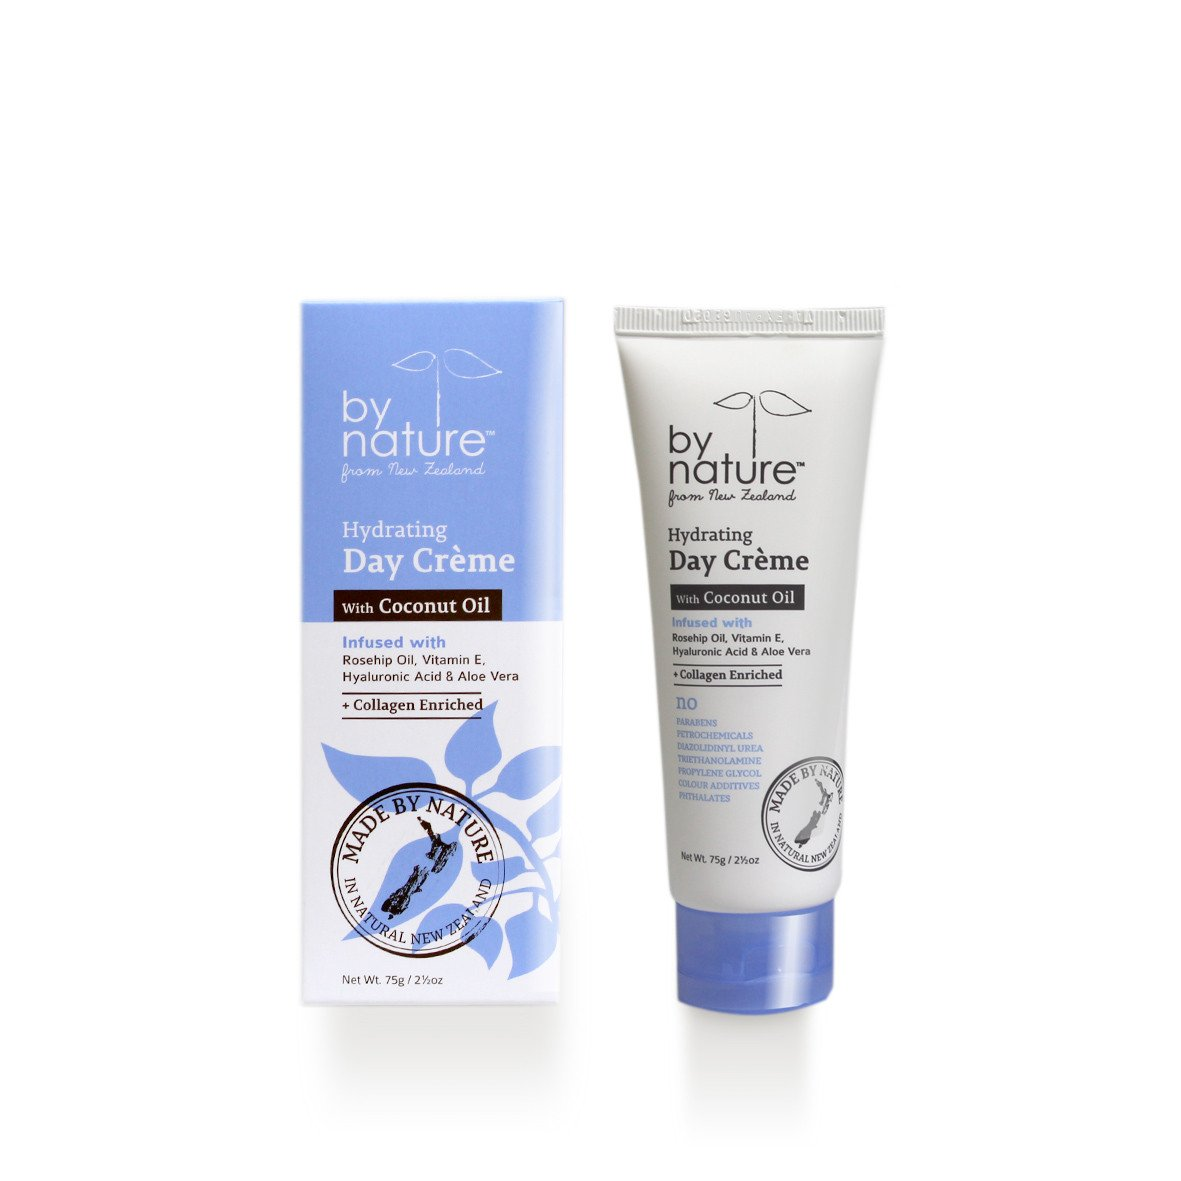 By Nature From New Zealand Rejuvenating Eye Cream